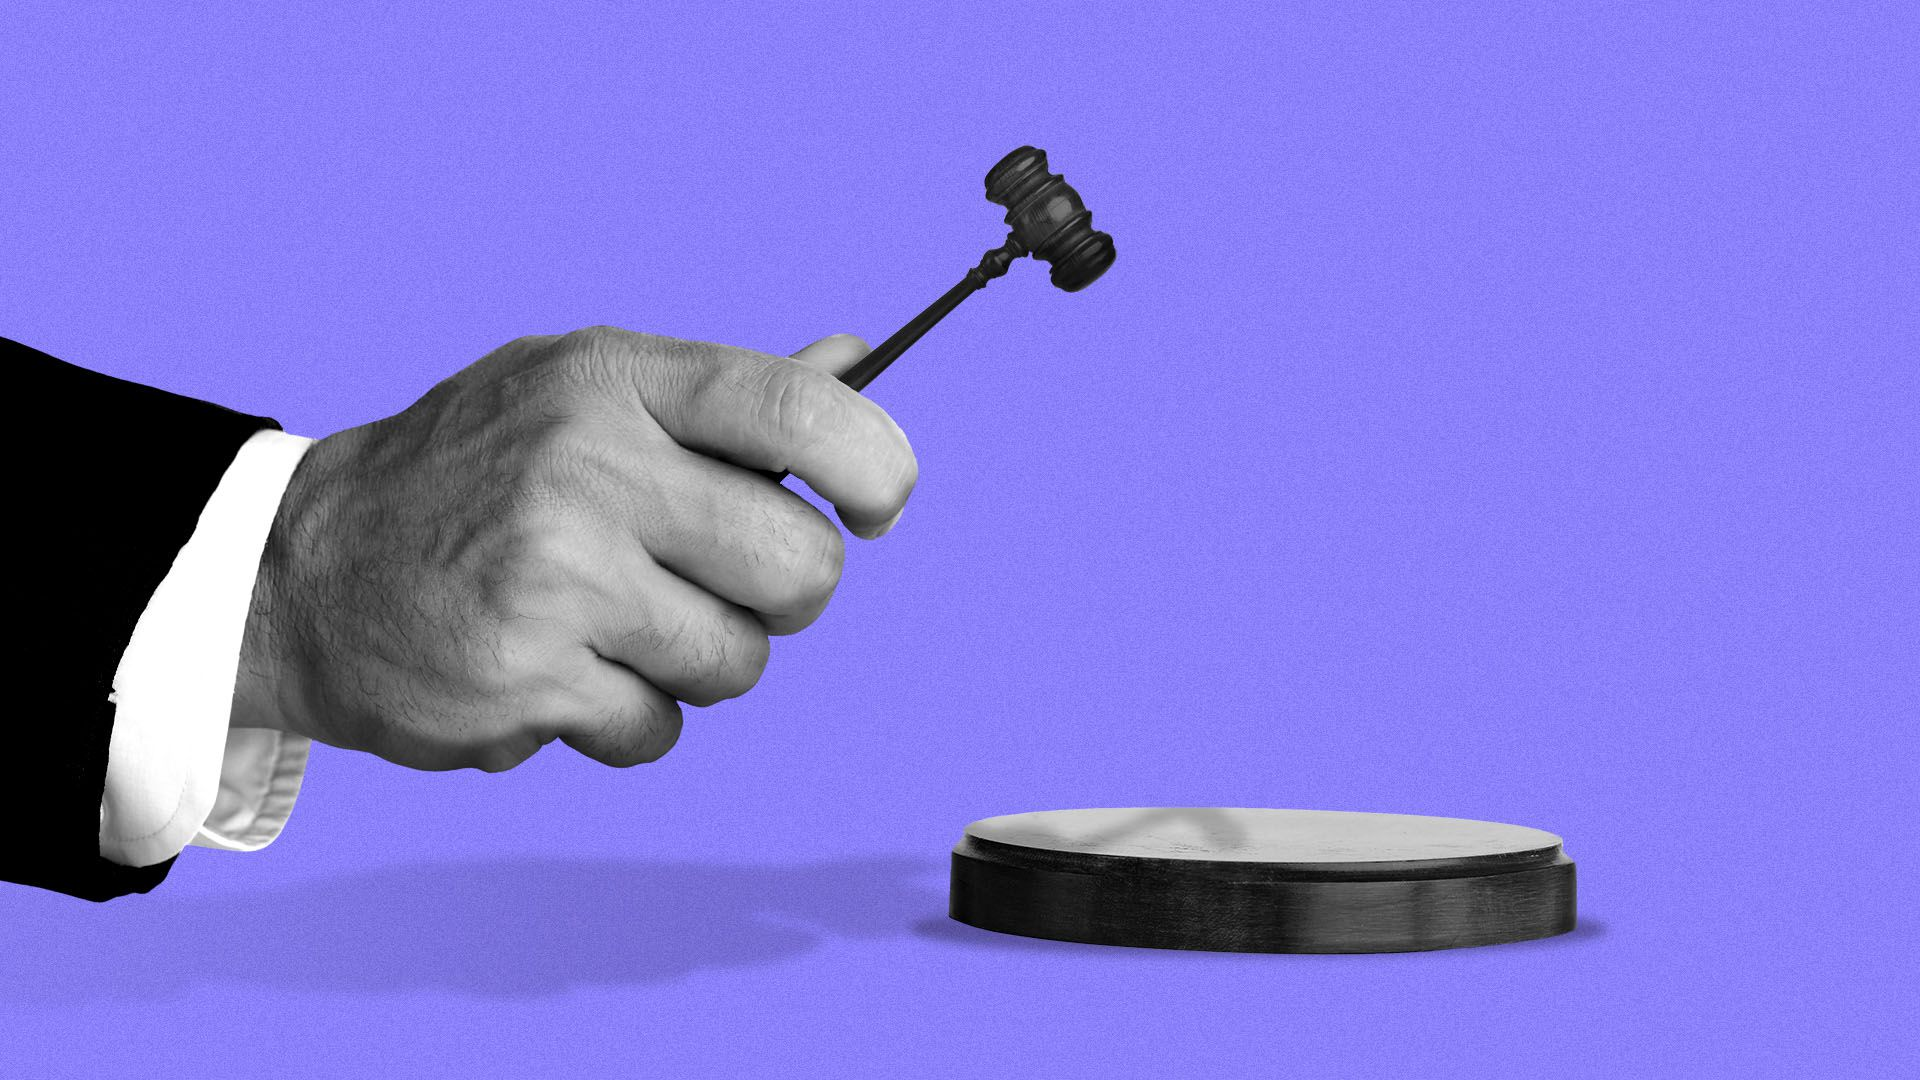 Illustration of a judge holding a tiny gavel